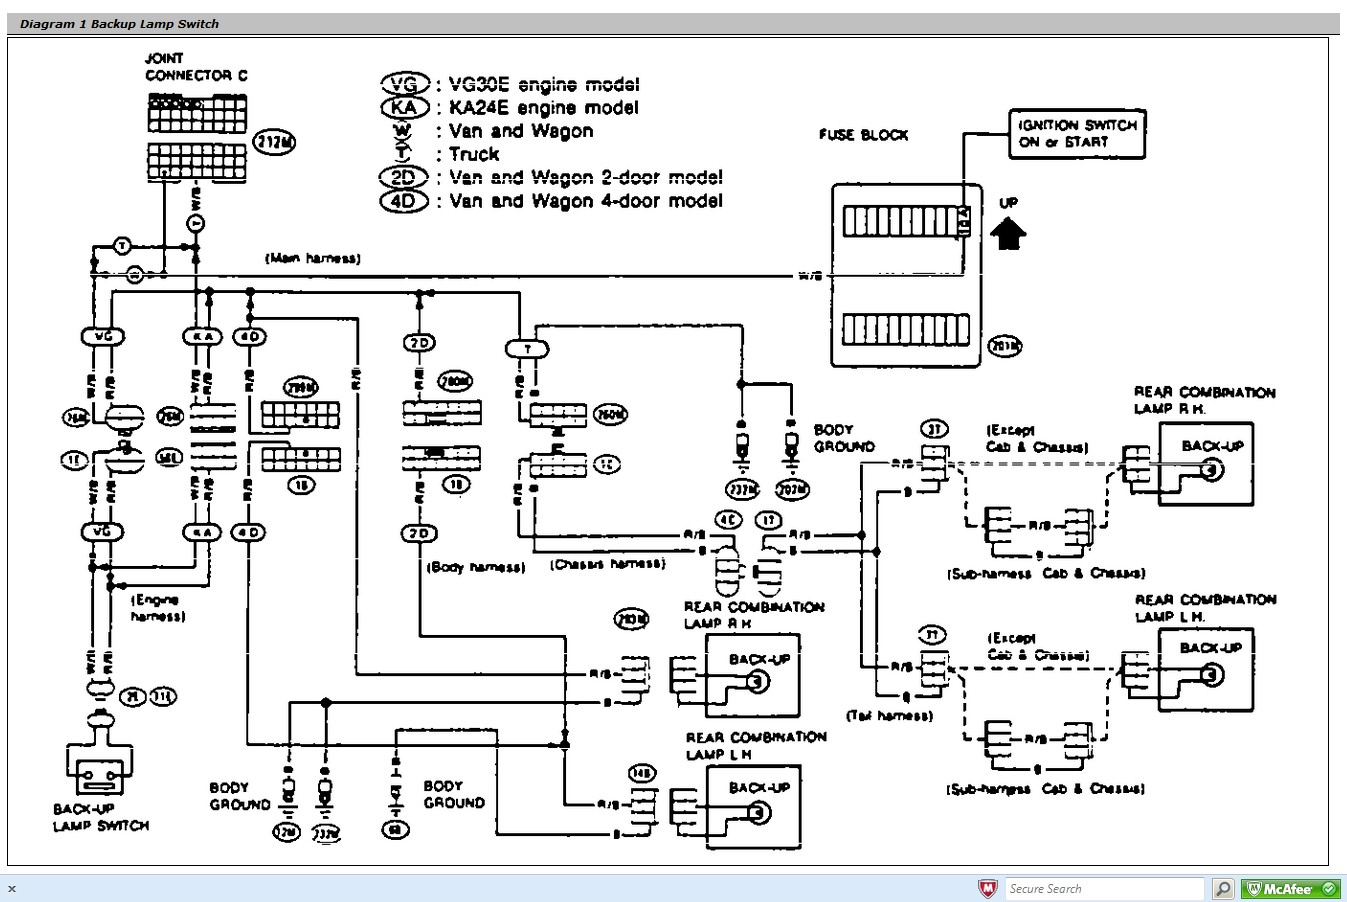 Mad Electronics Nhra Wiring Diagram - Wiring Diagrams Lol on go cars kill switch diagram, dual battery hook up diagram, 07 mustang battery cable diagram, 87 mustang window switch diagram, battery kill switch wire schematic for, battery relocation kill switch, battery isolation solenoid wiring diagram, ford think battery diagram, trunk mounted battery wiring diagram, 460 ford starter rebuild diagram, battery relocation honda, car battery diagram, battery relocation kit, battery diagram in trunk, battery relocation fuse, battery kill switch diagram, battery relocation cable, marine battery diagram, battery to starter diagram, honda 300 battery diagram,